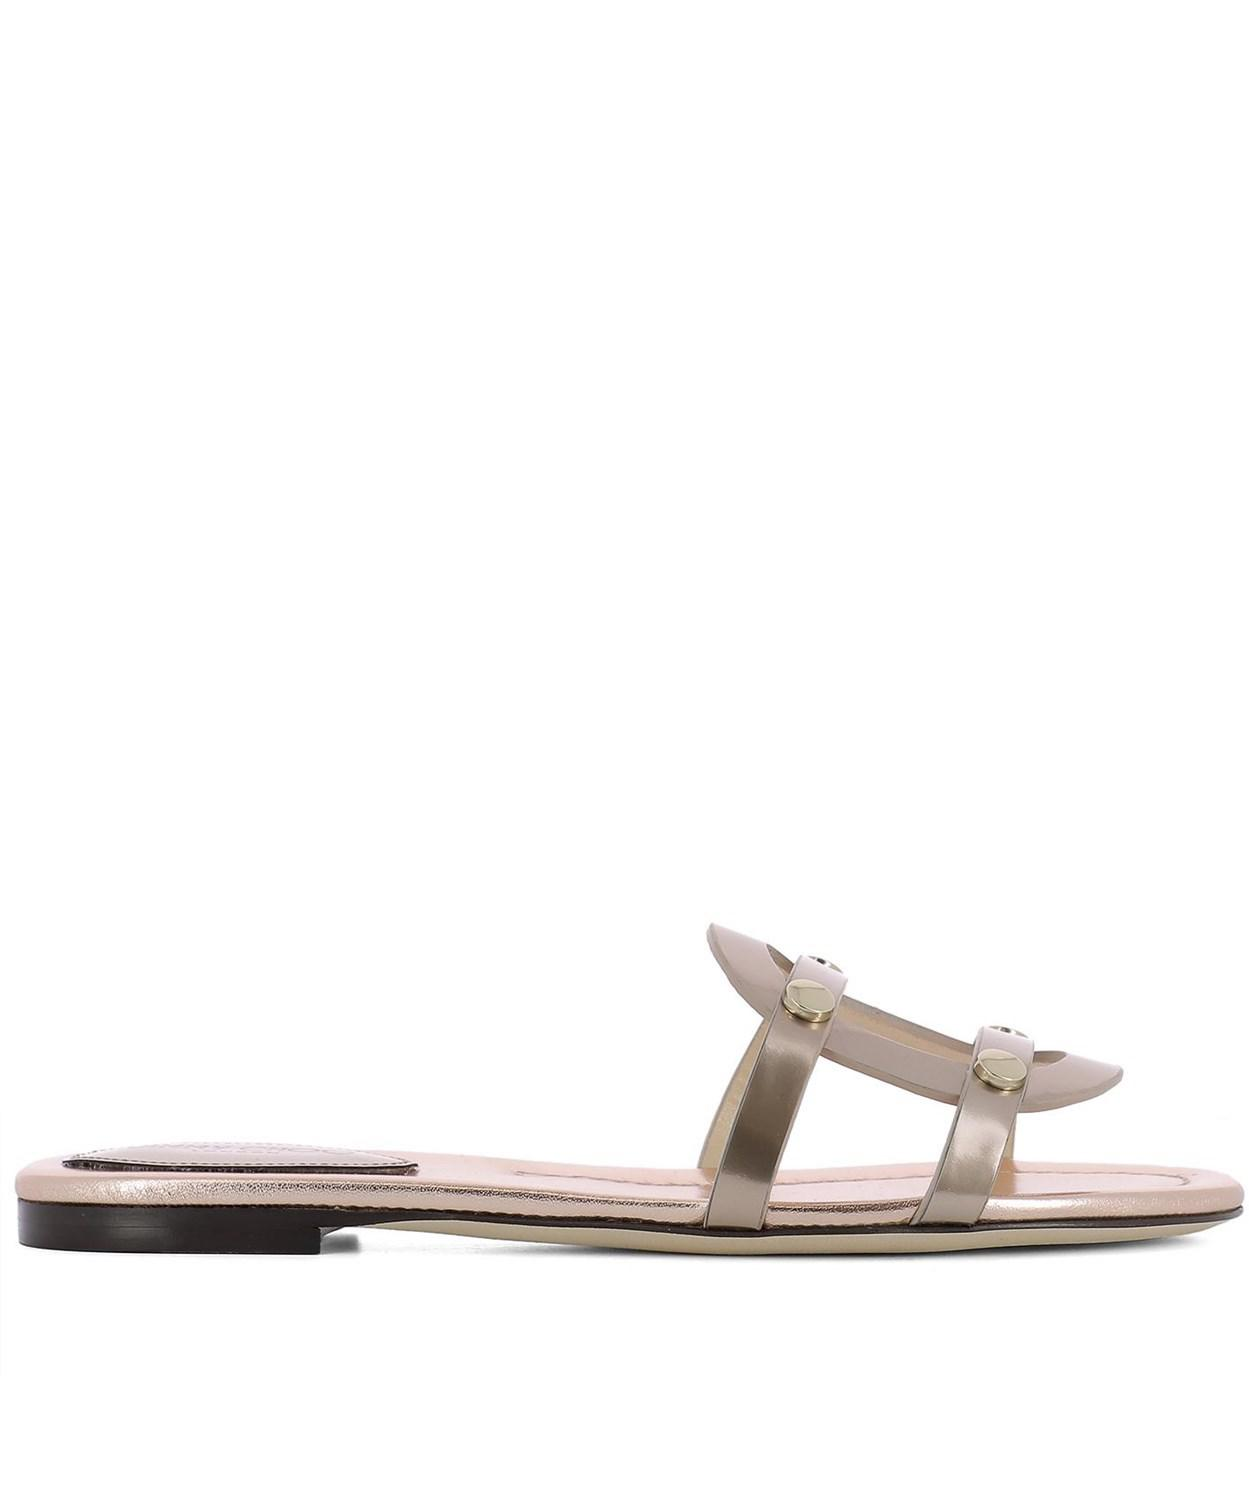 00c444b22ad6fd Lyst - Jimmy Choo Women s Pink Leather Sandals in Pink